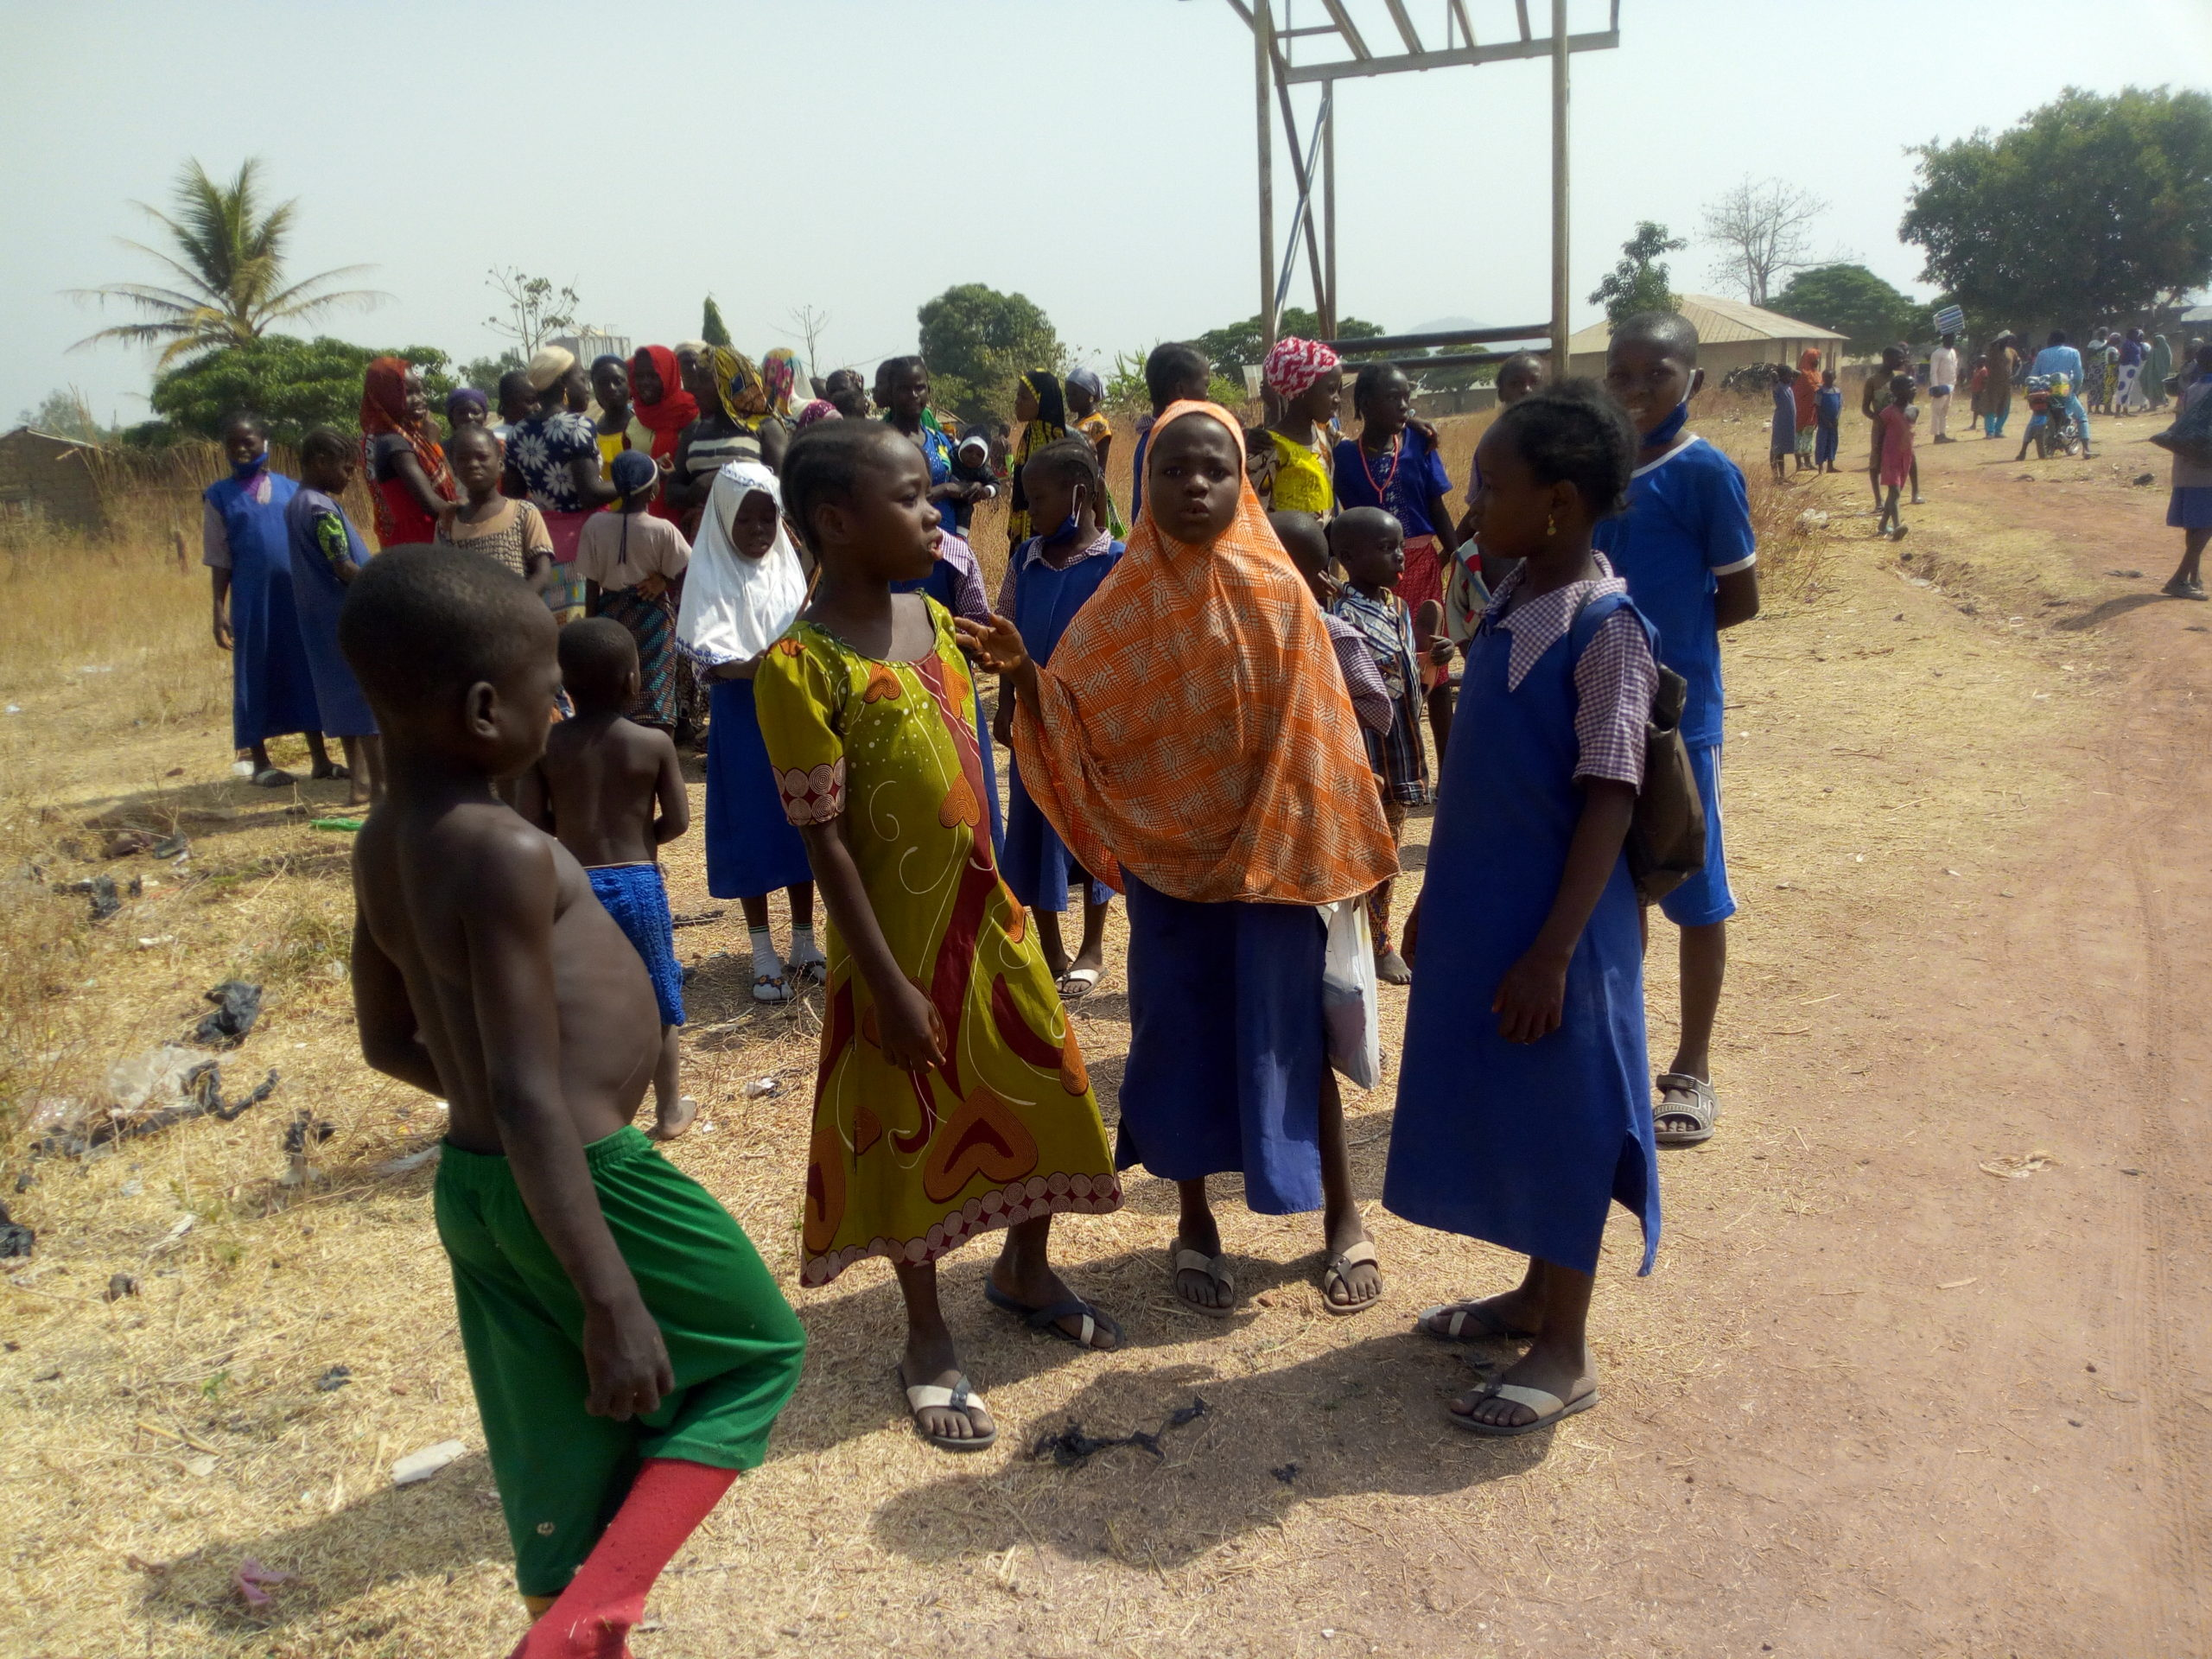 Pupils playing during their break period